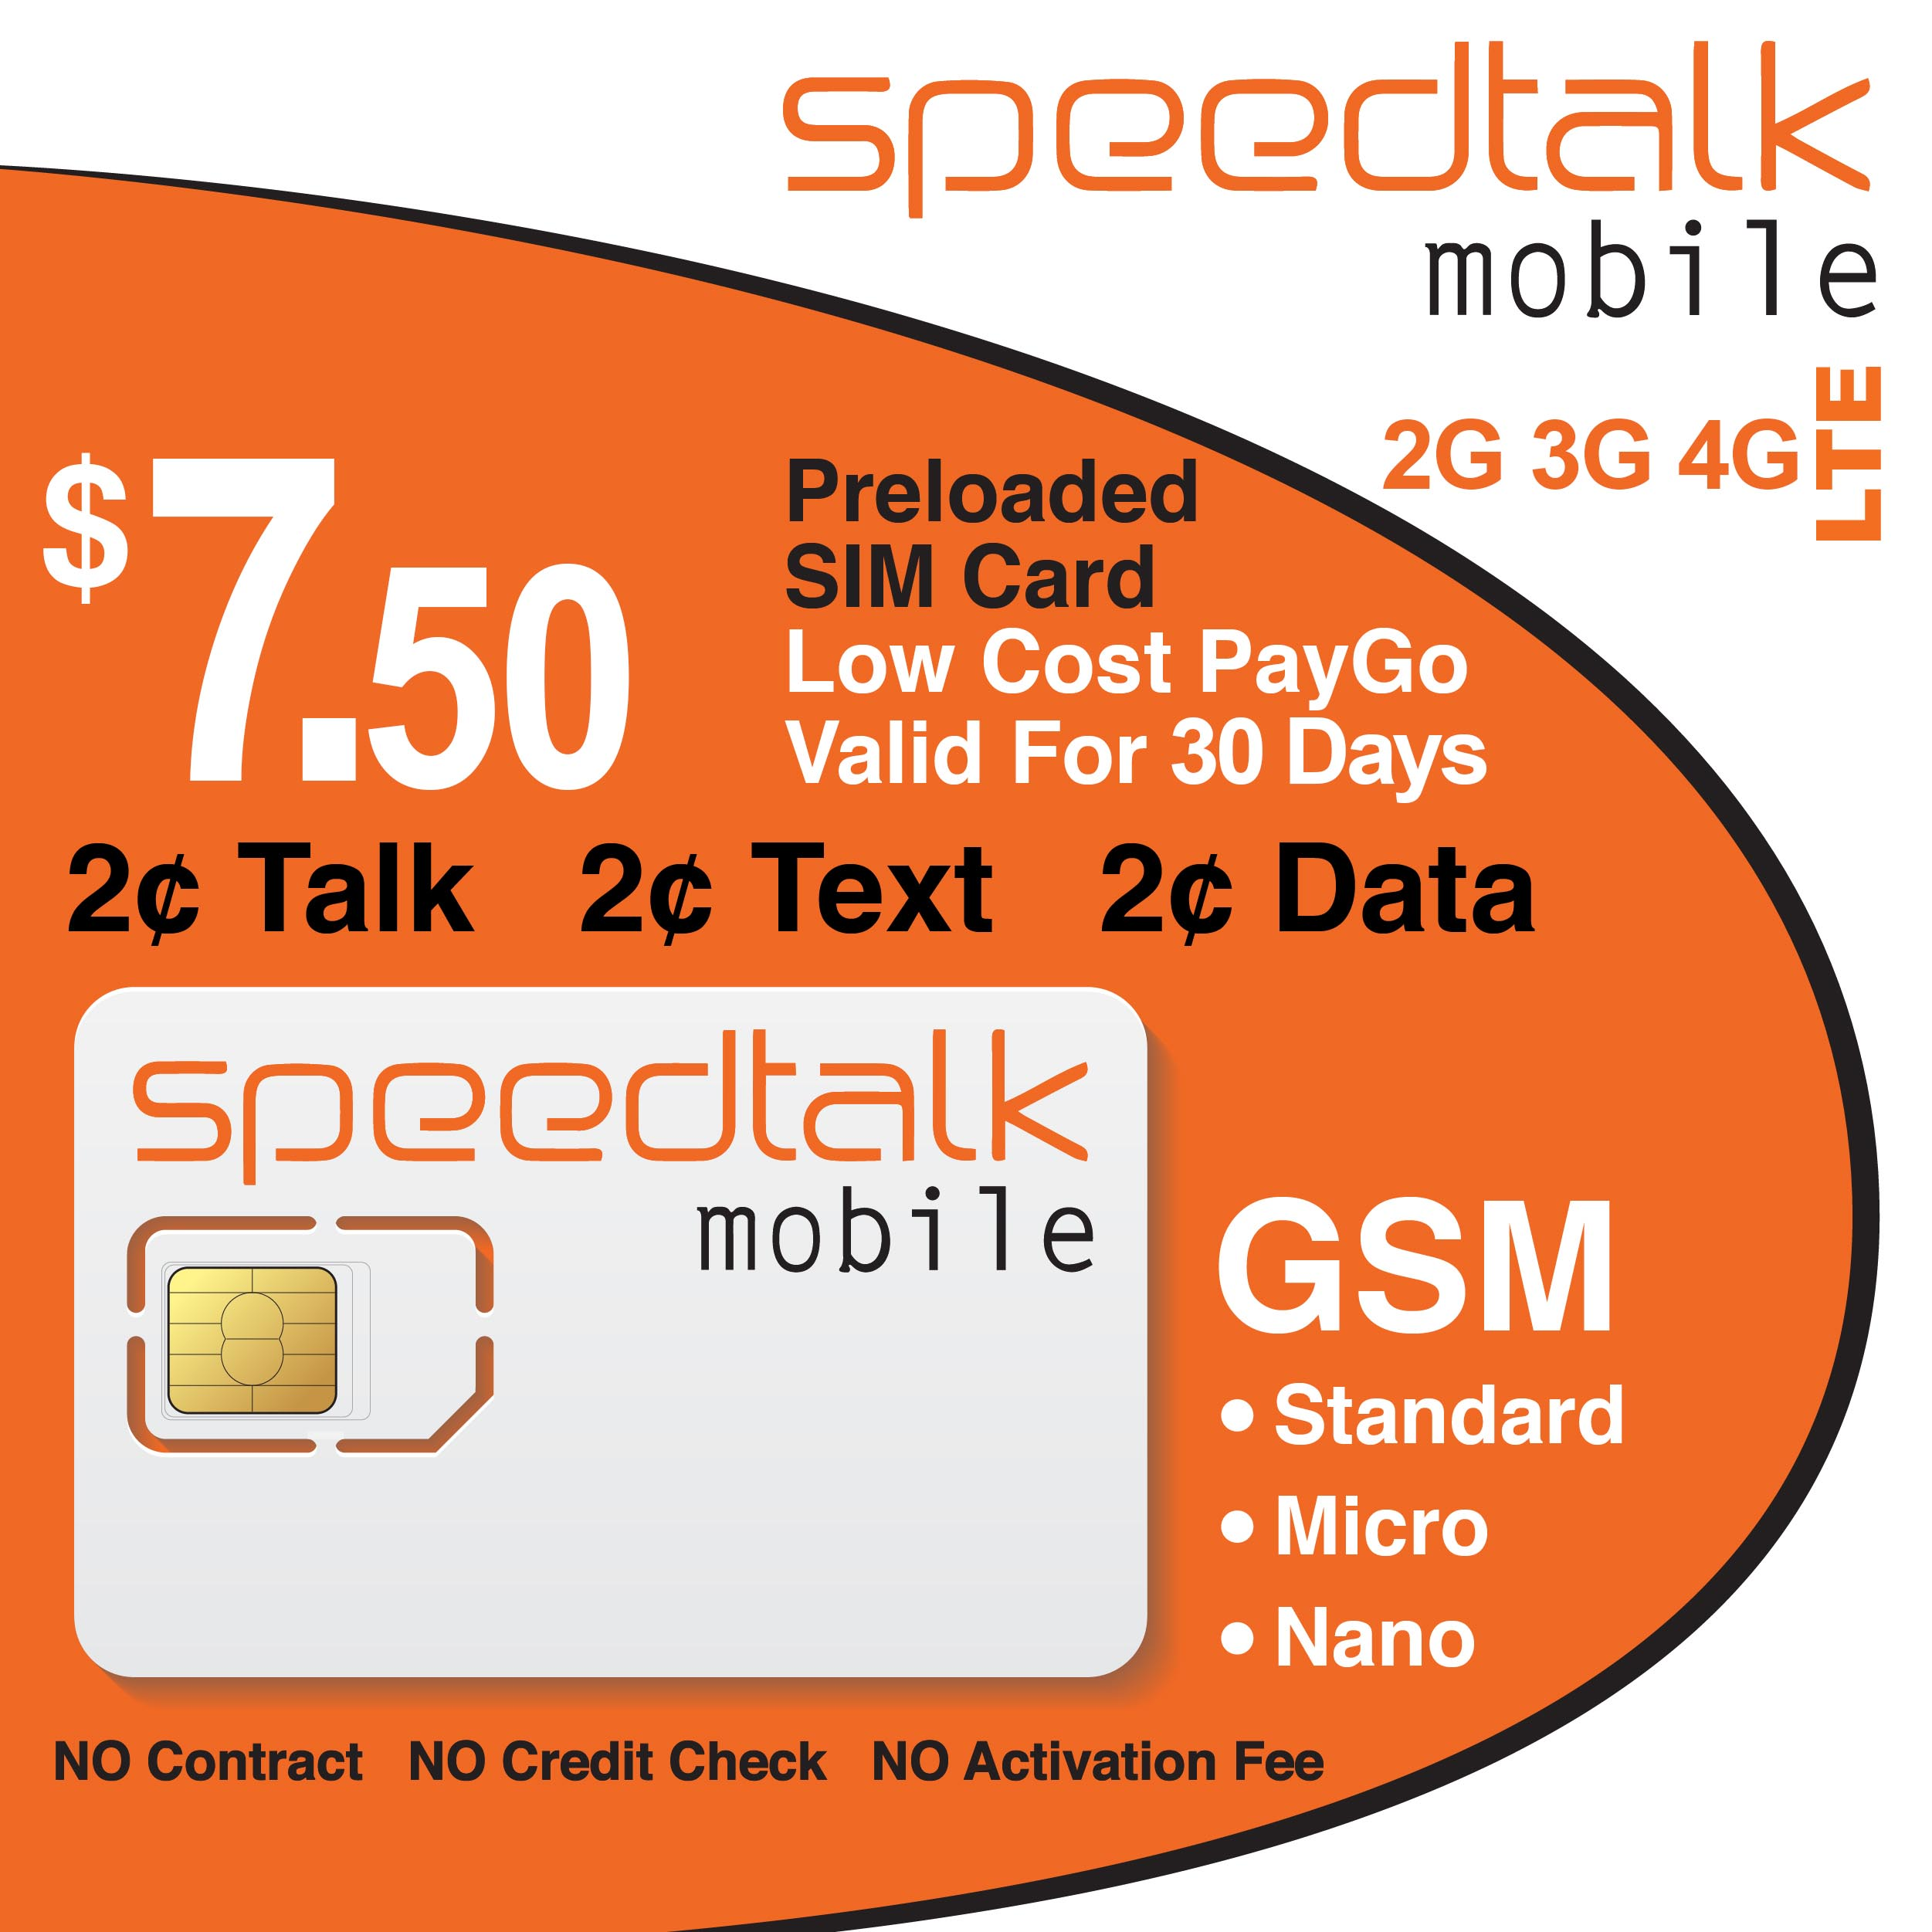 SpeedTalk Mobile 3-in-1 SIM Card $7.50 Preloaded No Contract